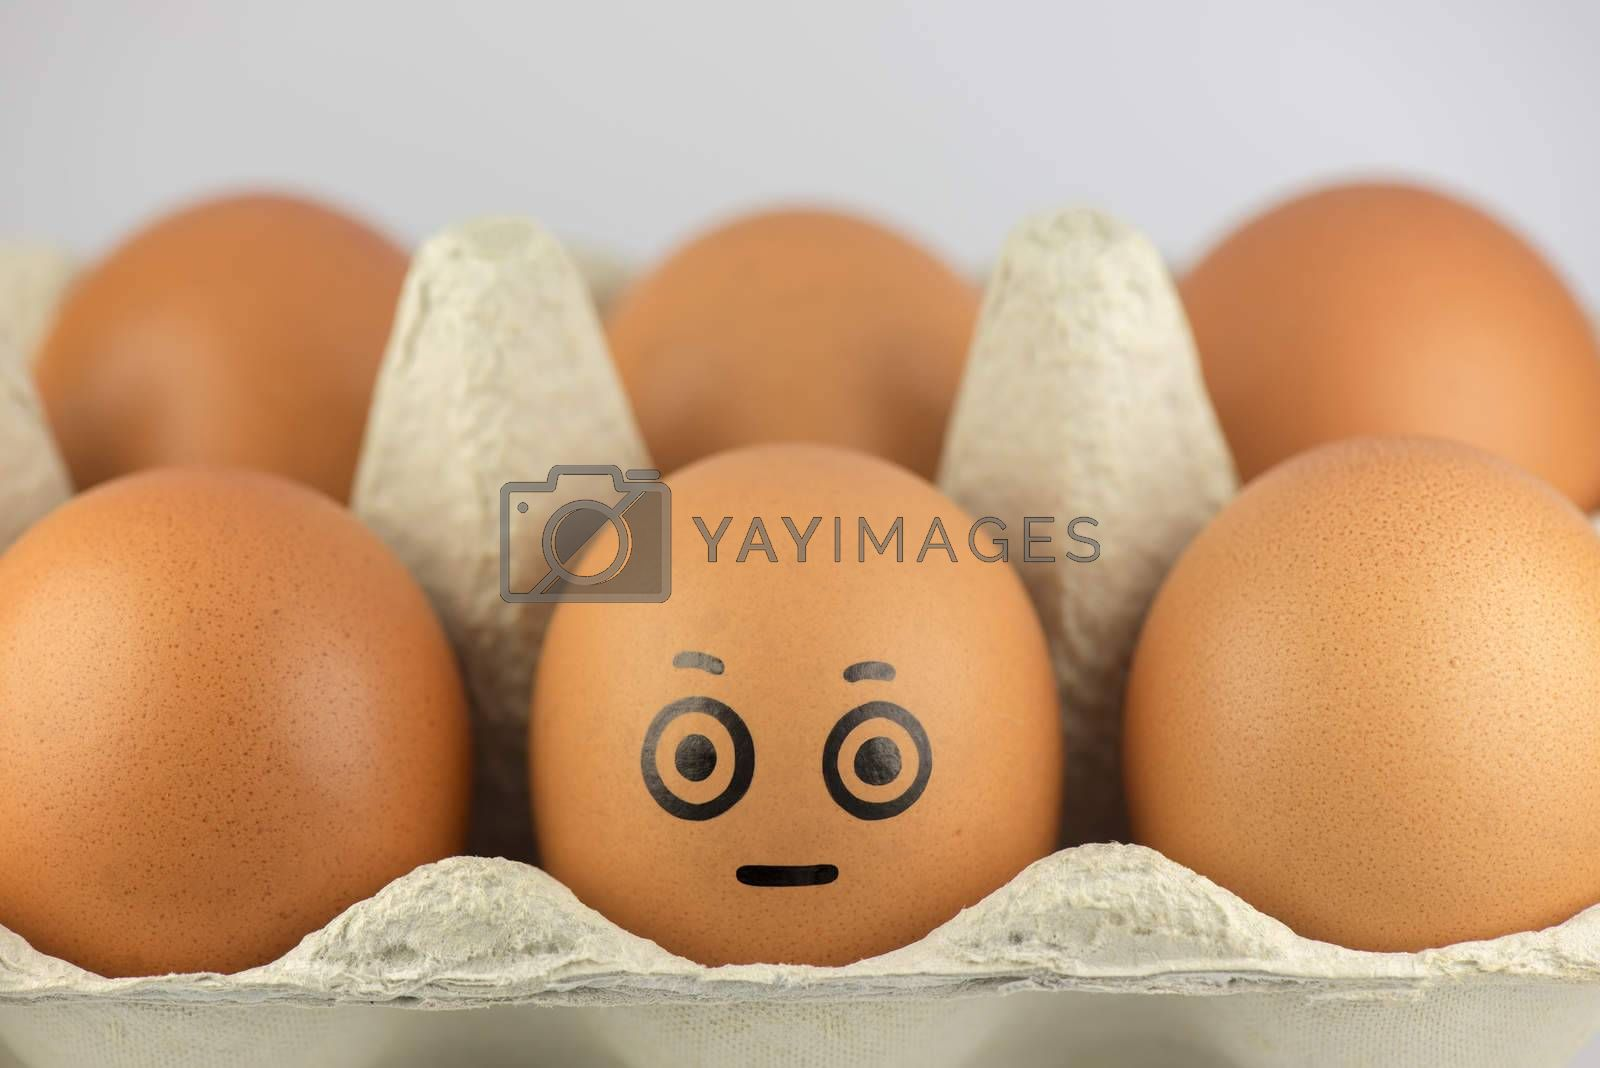 Egg with a face in a egg carton  by Tofotografie